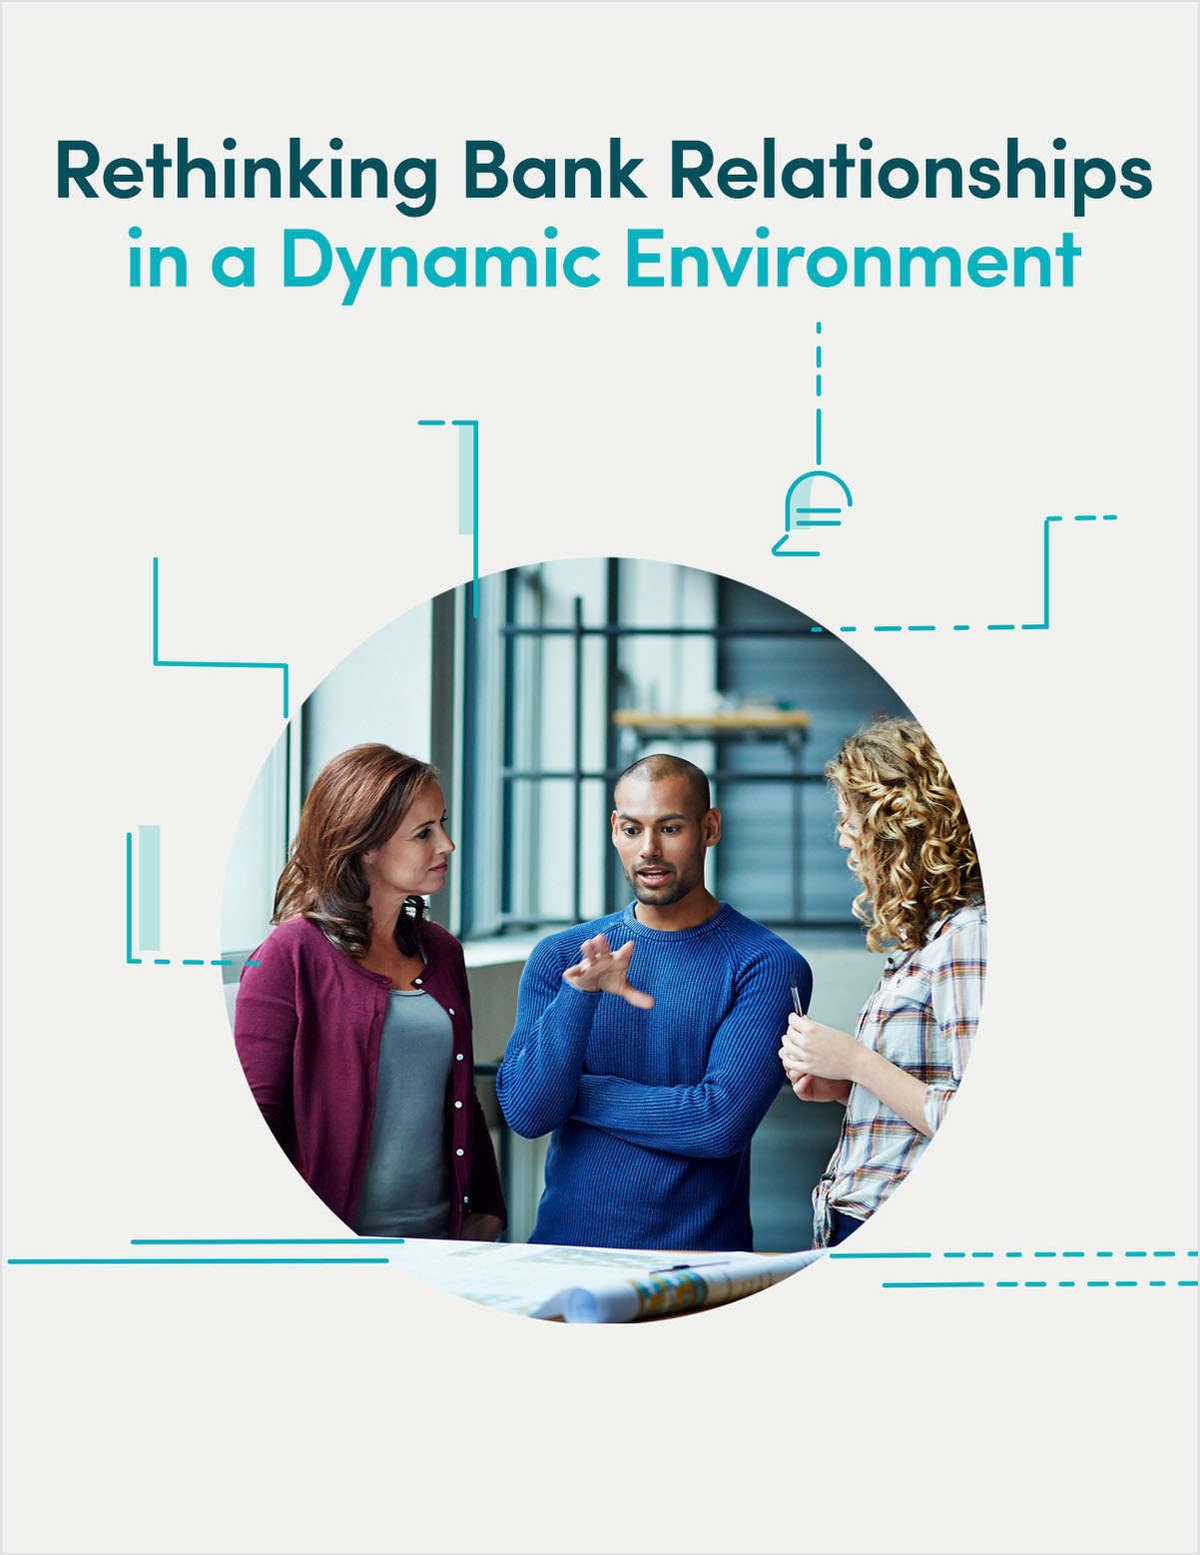 Rethinking Bank Relationships in a Dynamic Environment